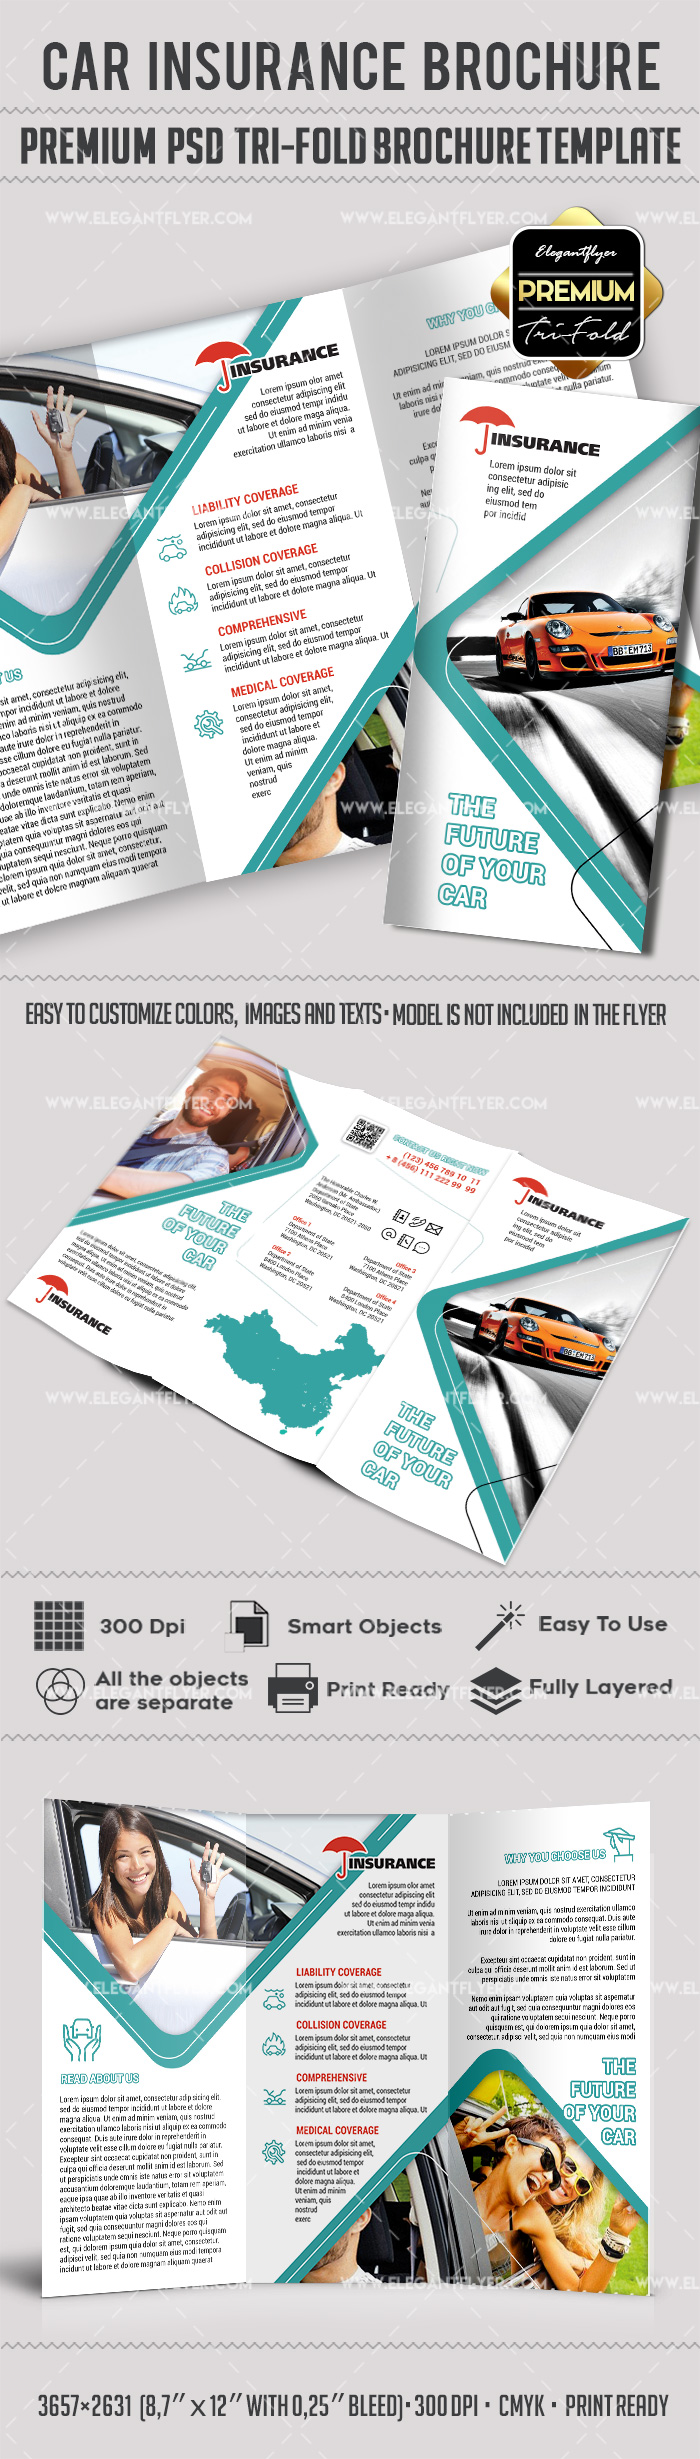 Car Insurance Brochure in PSD